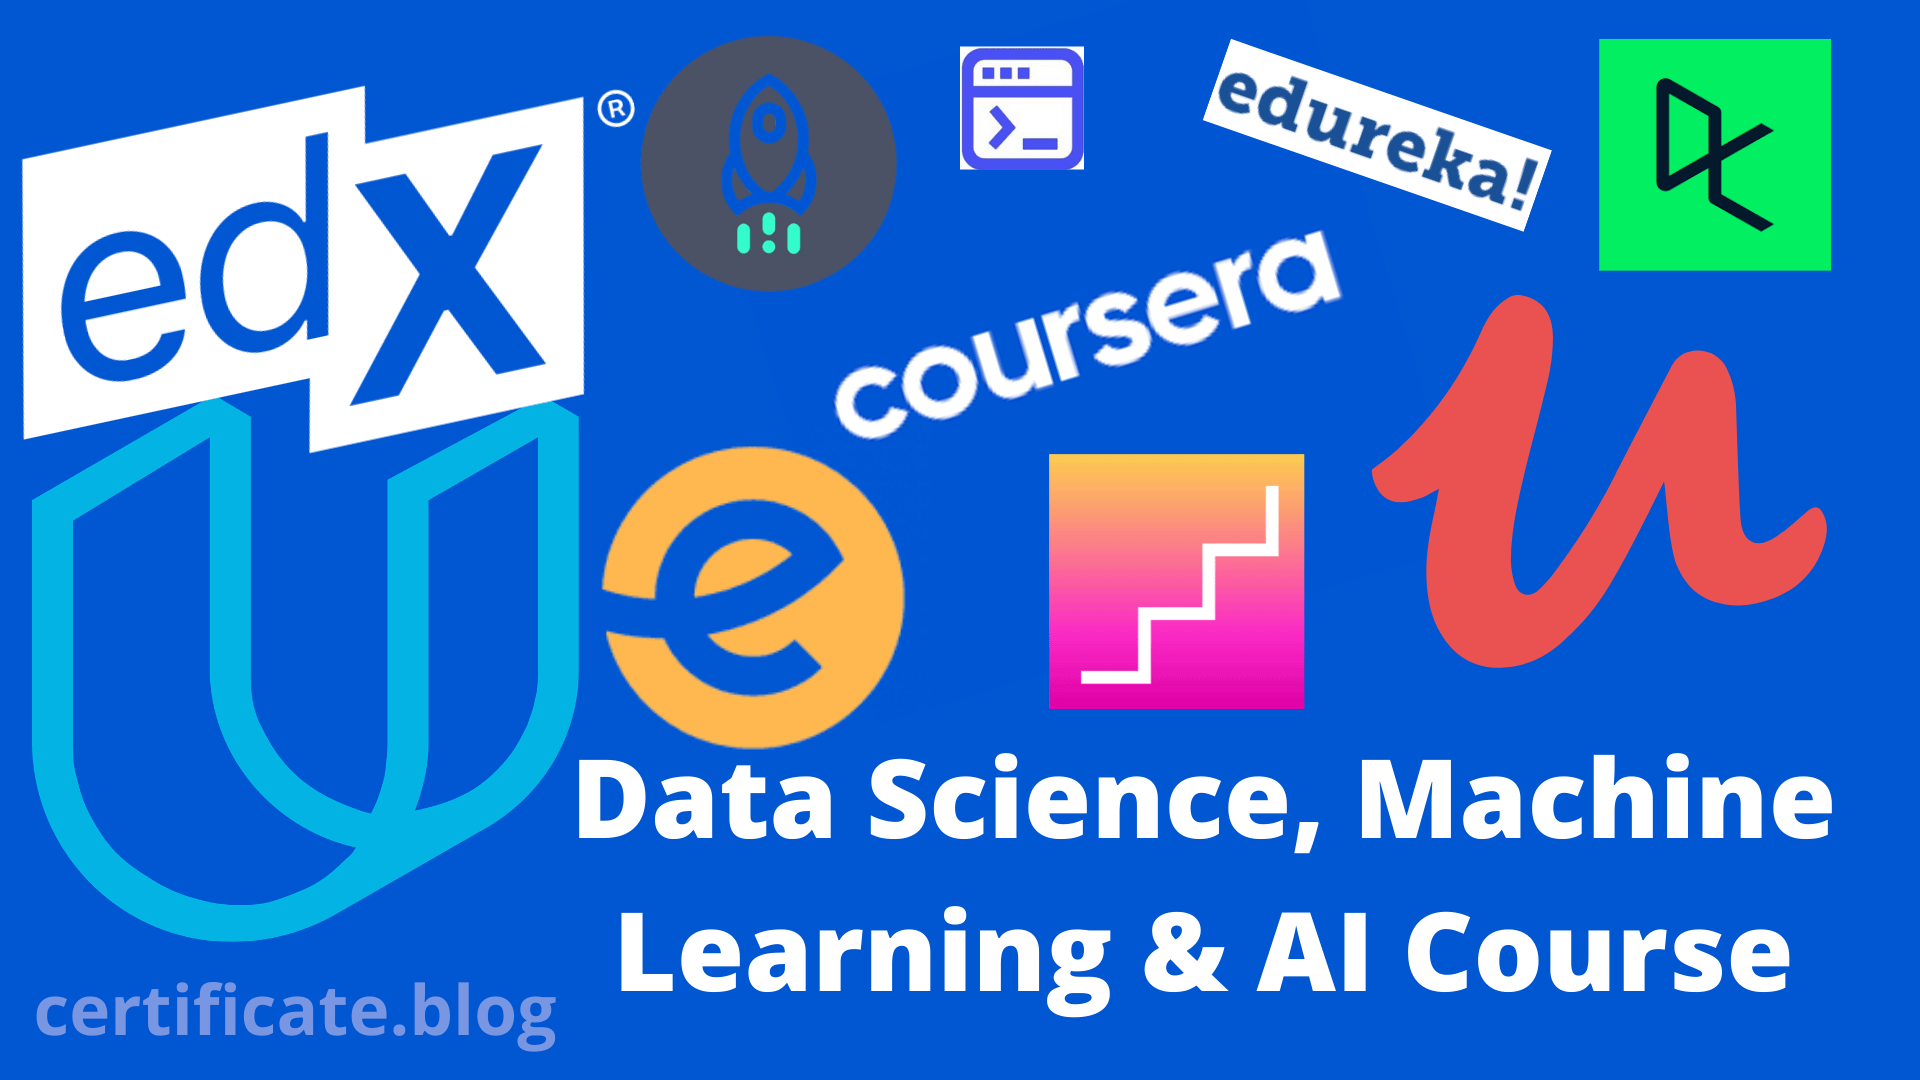 Data Science, Machine Learning & AI Course